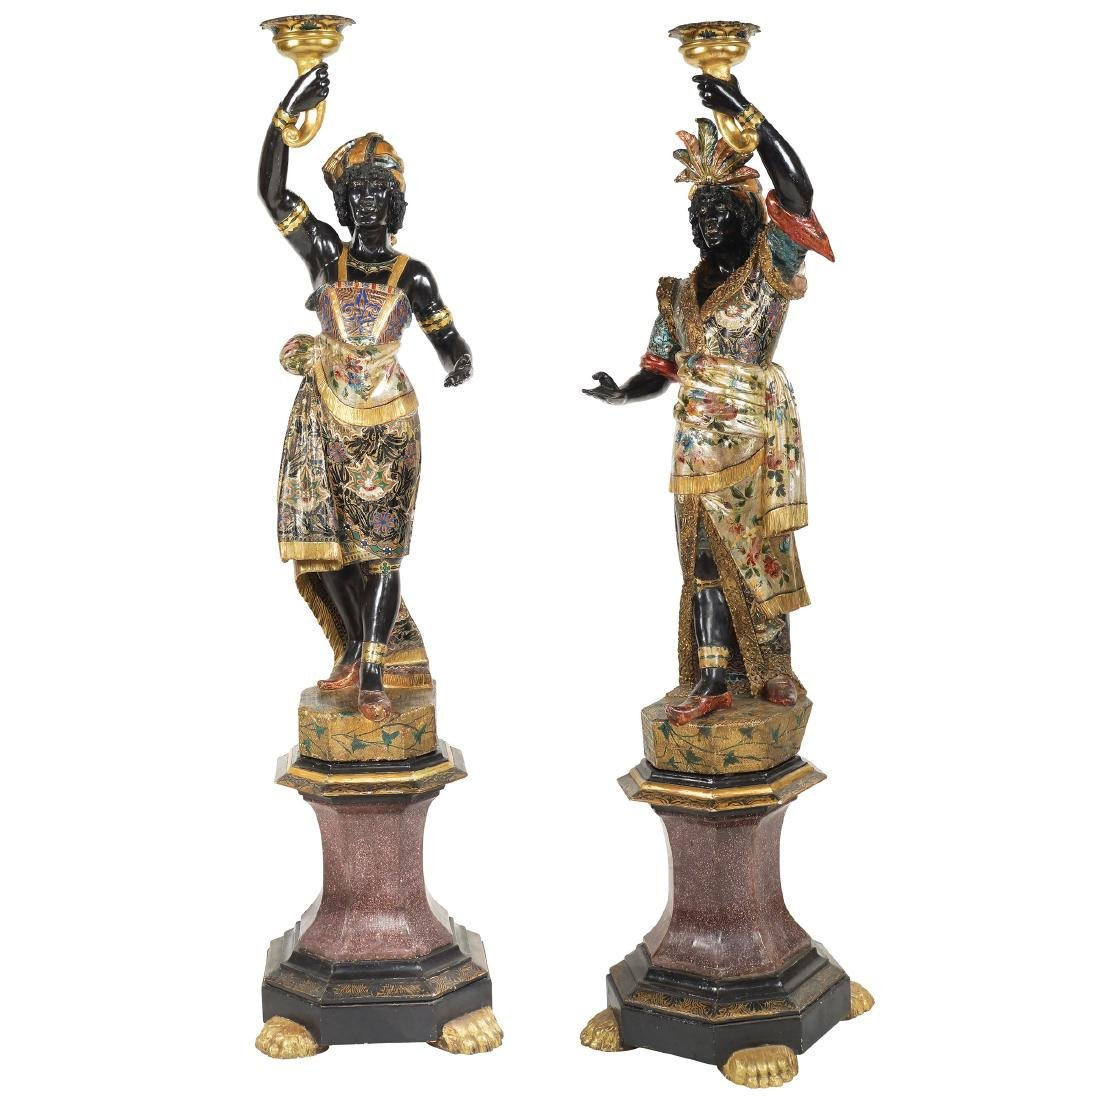 PAIR OF VENETIAN MORI